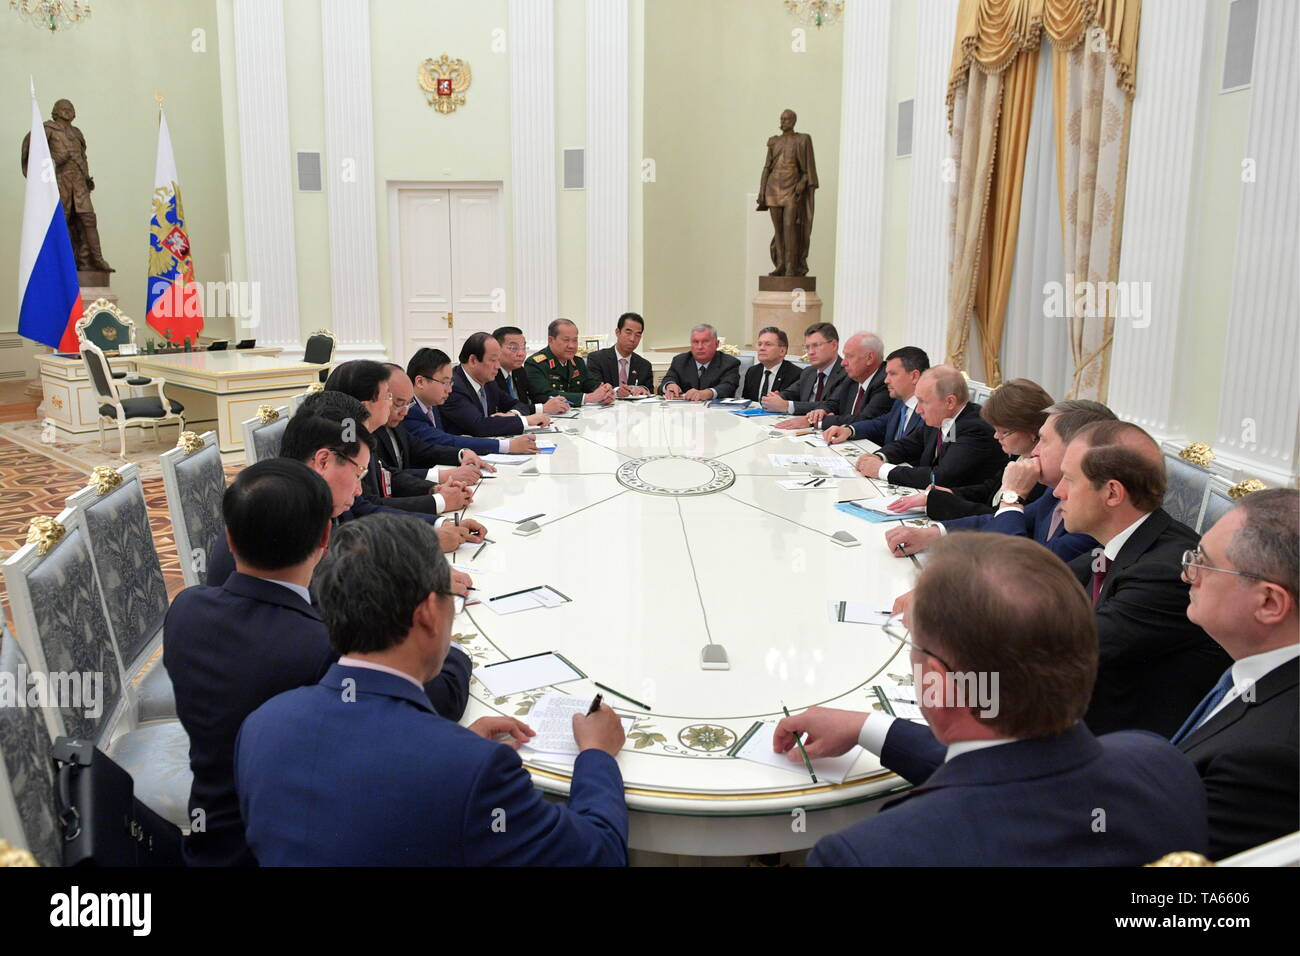 Moscow, Russia. 22nd May, 2019. MOSCOW, RUSSIA - MAY 22, 2019: Russia's President Vladimir Putin (R centre) and Vietnam's Prime Minister Nguyen Xuan Phuc (L centre) during a meeting at the Moscow Kremlin. Alexei Druzhinin/Russian Presidential Press and Information Office/TASS Credit: ITAR-TASS News Agency/Alamy Live News - Stock Image